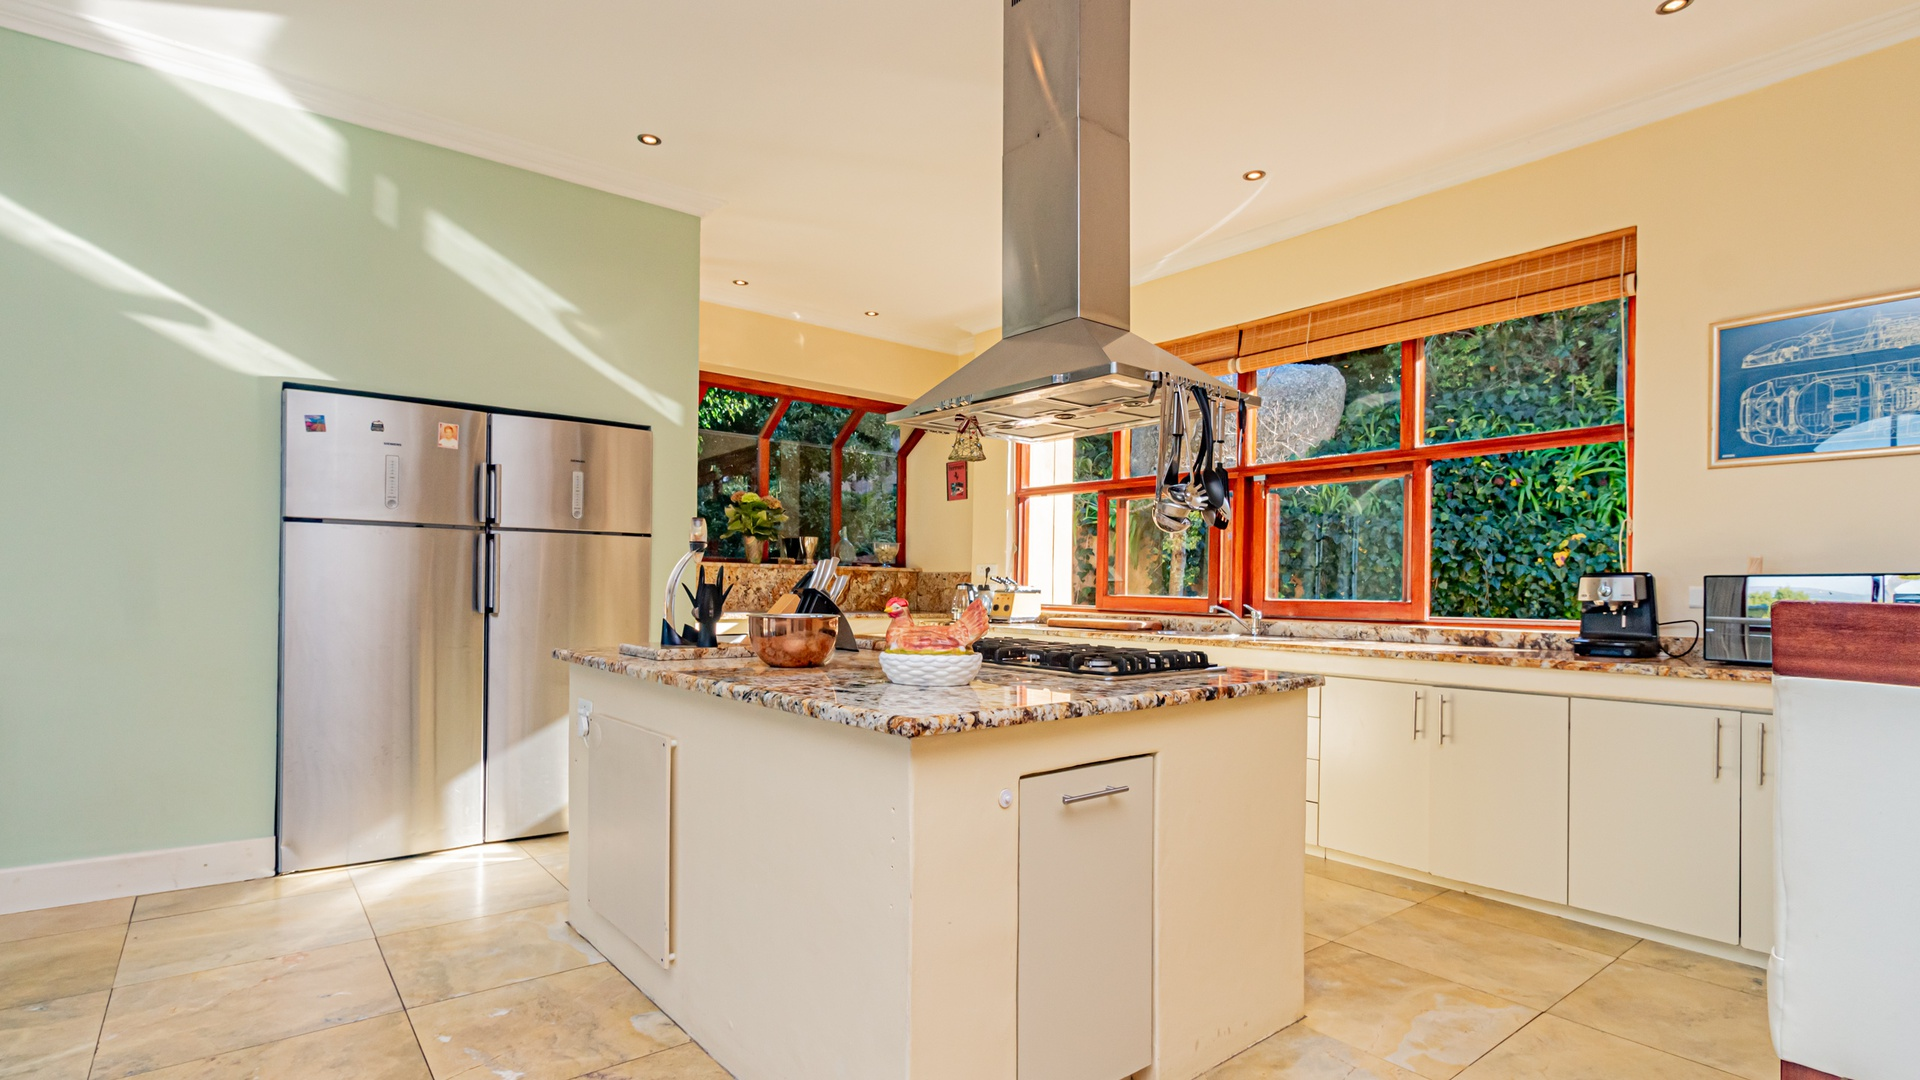 House in Hout Bay - Kitchen island